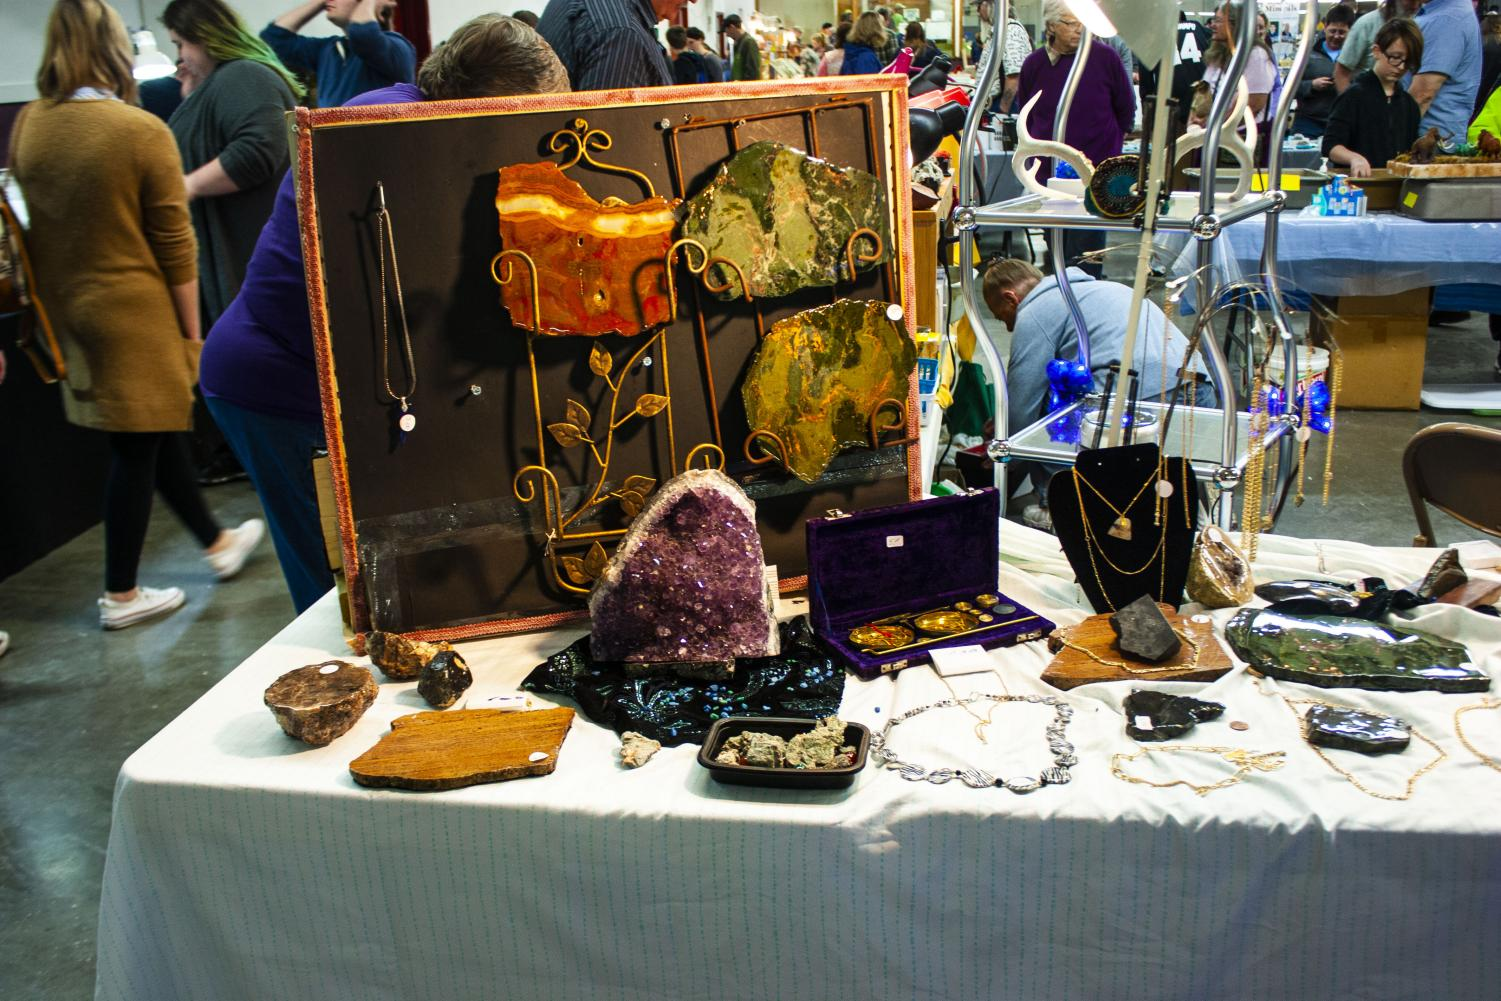 A+display+of+jewelry+and+large+pieces+of+agates+and+geodes+displayed+by+a+vendor+at+the+56th+Annual+Chippewa+Valley+Gem+and+Mineral+Society+show+and+sale.